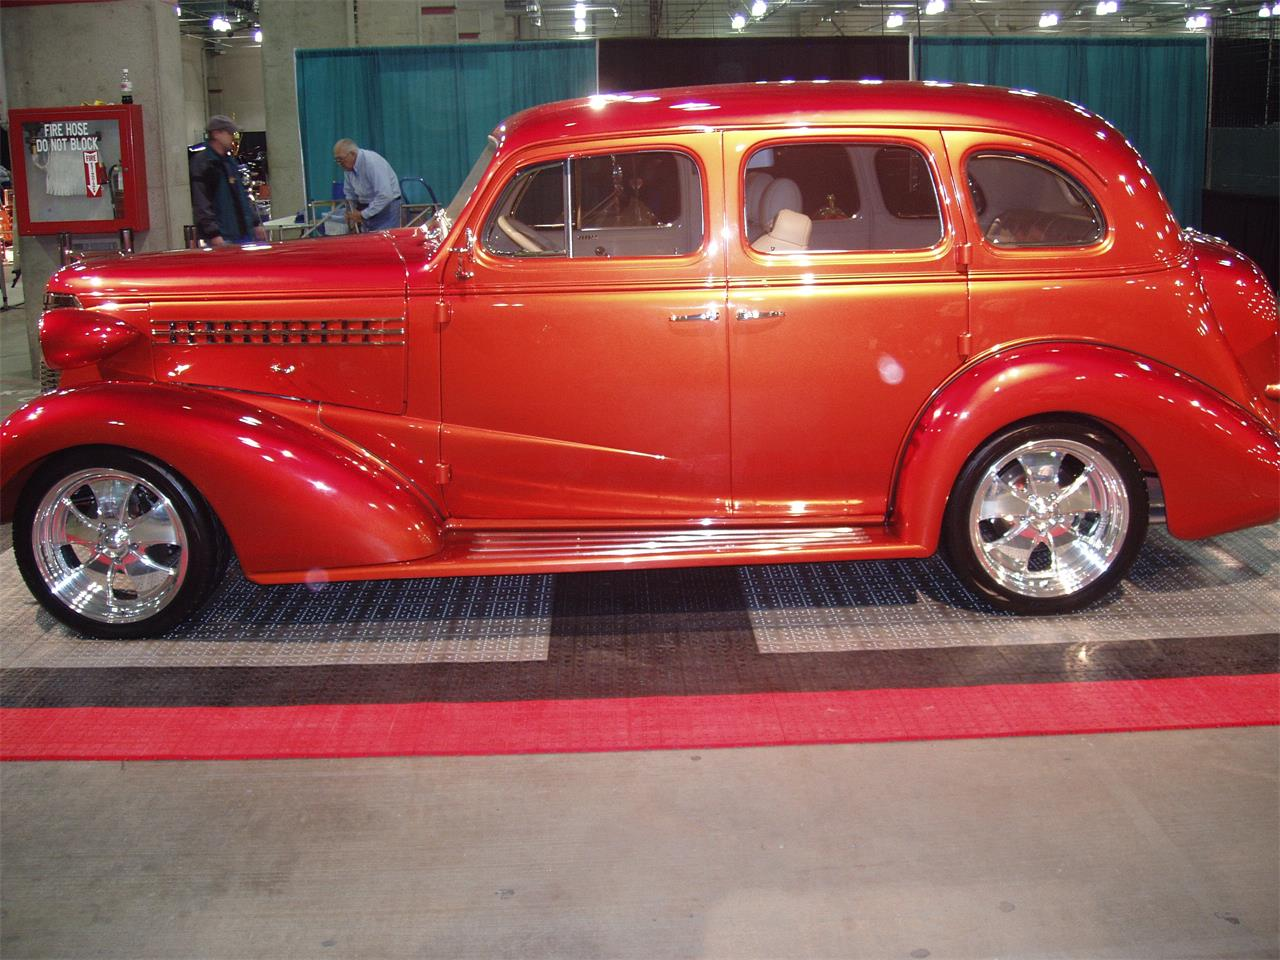 Large Picture of Classic 1938 Chevrolet Sedan located in Orangevale California - $60,000.00 Offered by a Private Seller - K3CQ